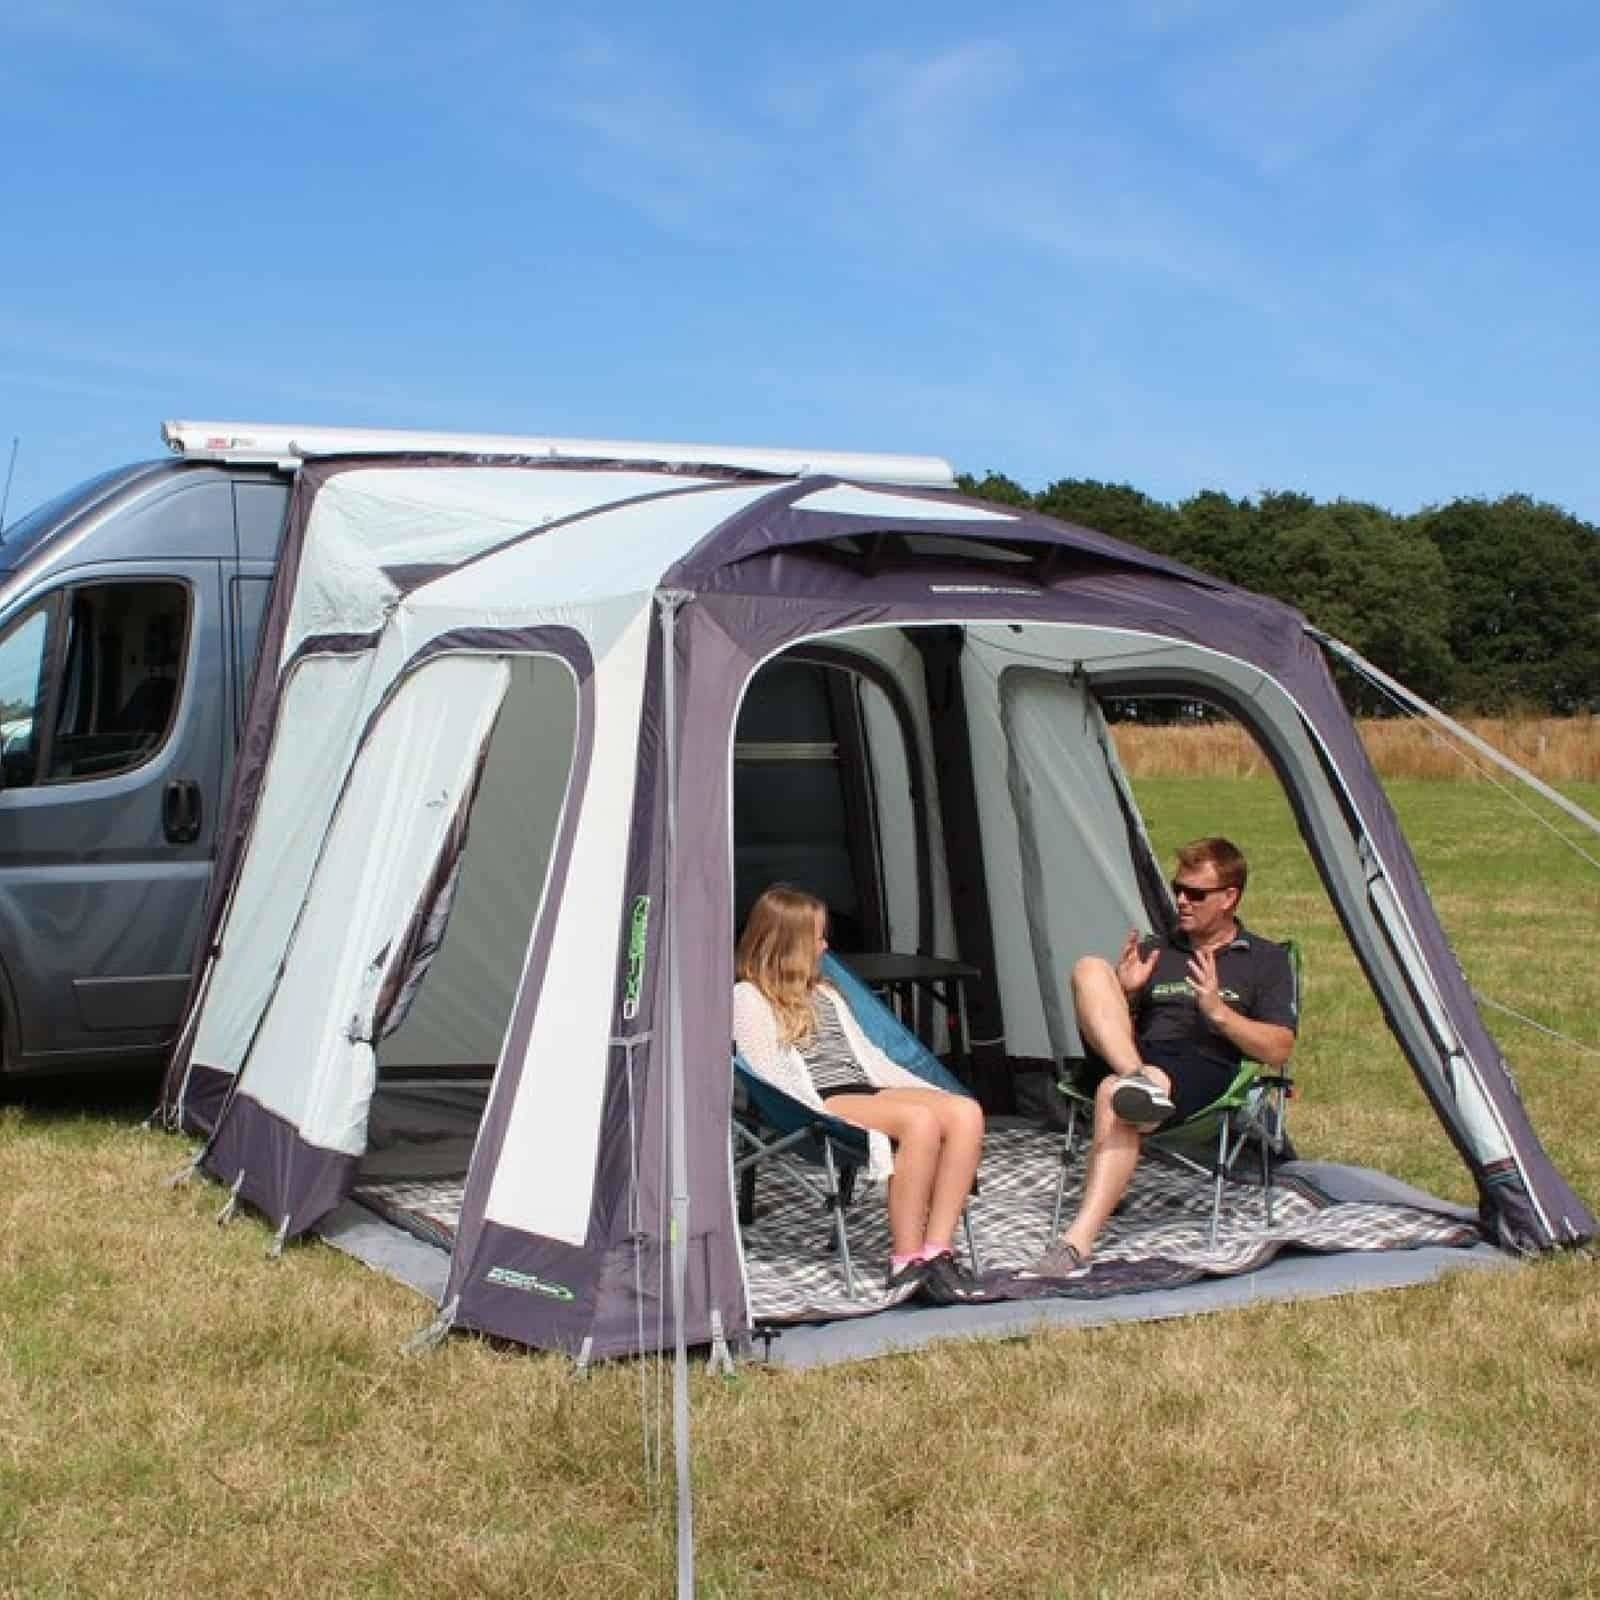 2018 Outdoor Revolution Movelite T1 Airbeam Driveaway Awning Motorhome